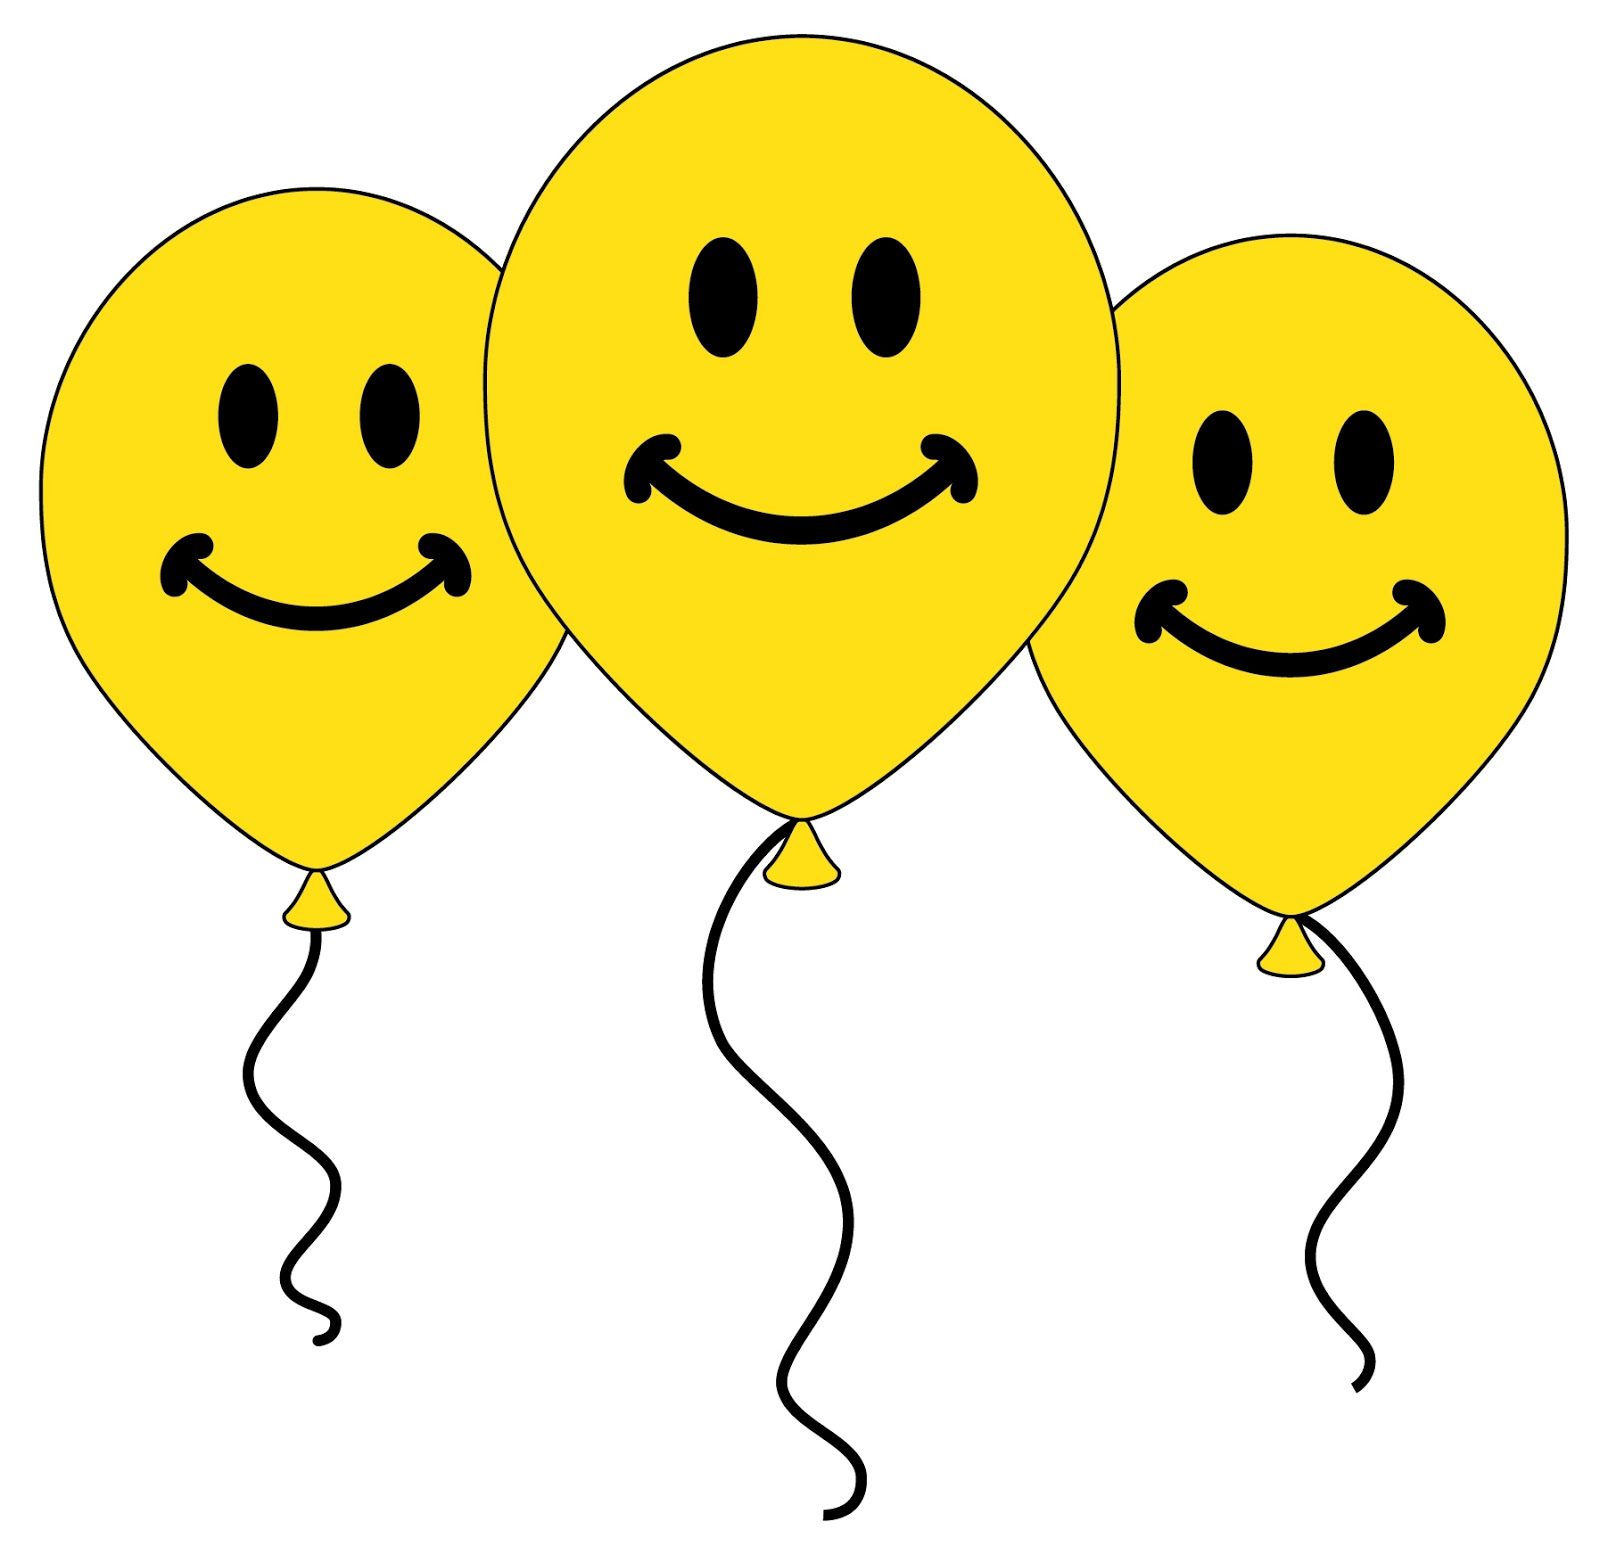 Funny balloon faces - Smiley Symbol